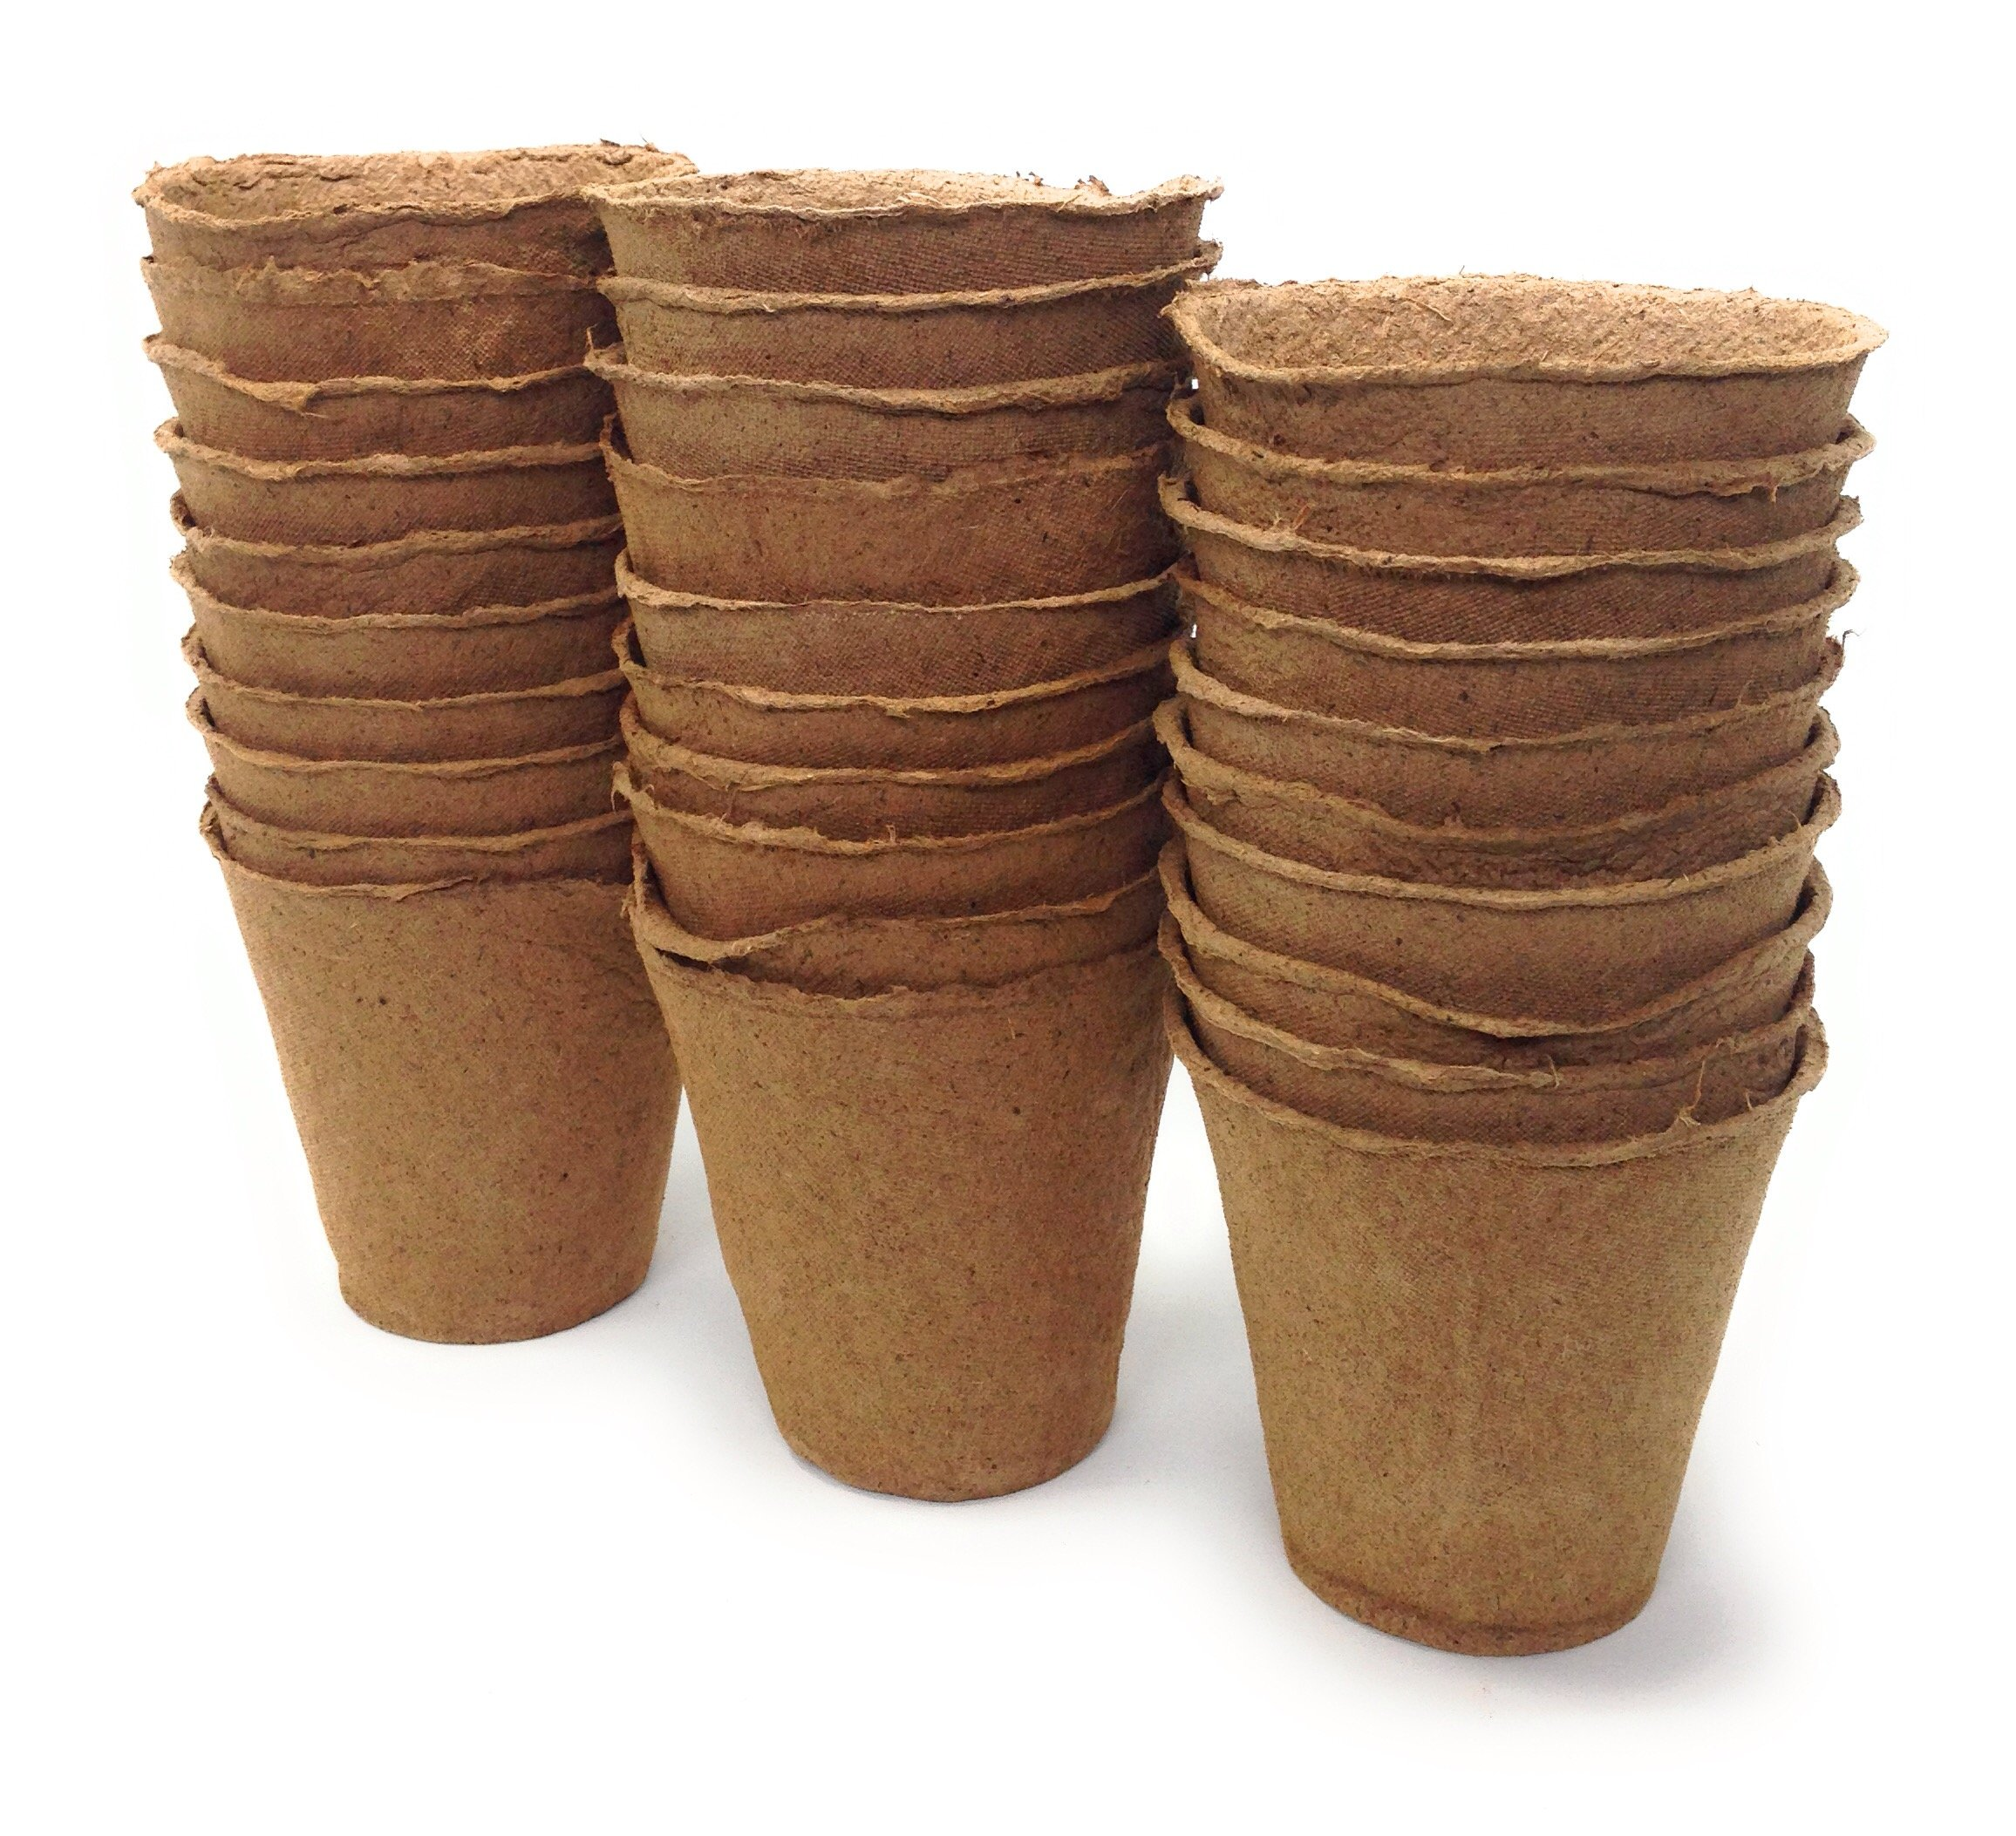 Brillante Plant Starter Peat Pots - 30 Pack of 3 Inch Pots for Your Garden, Greenhouse or Nursery - Ideal for Organic Seed Planting & Gardening by Brillante